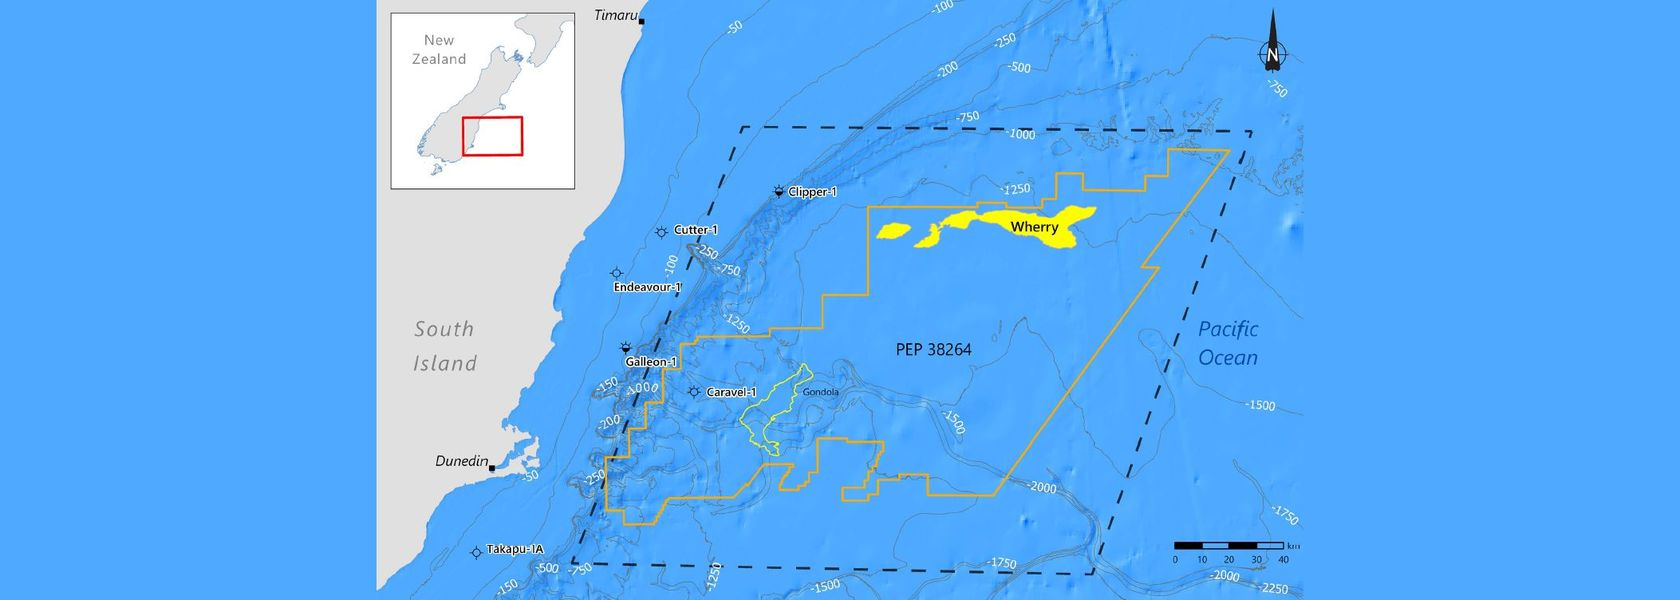 Beach Energy to explore Canterbury Basin offshore New Zealand